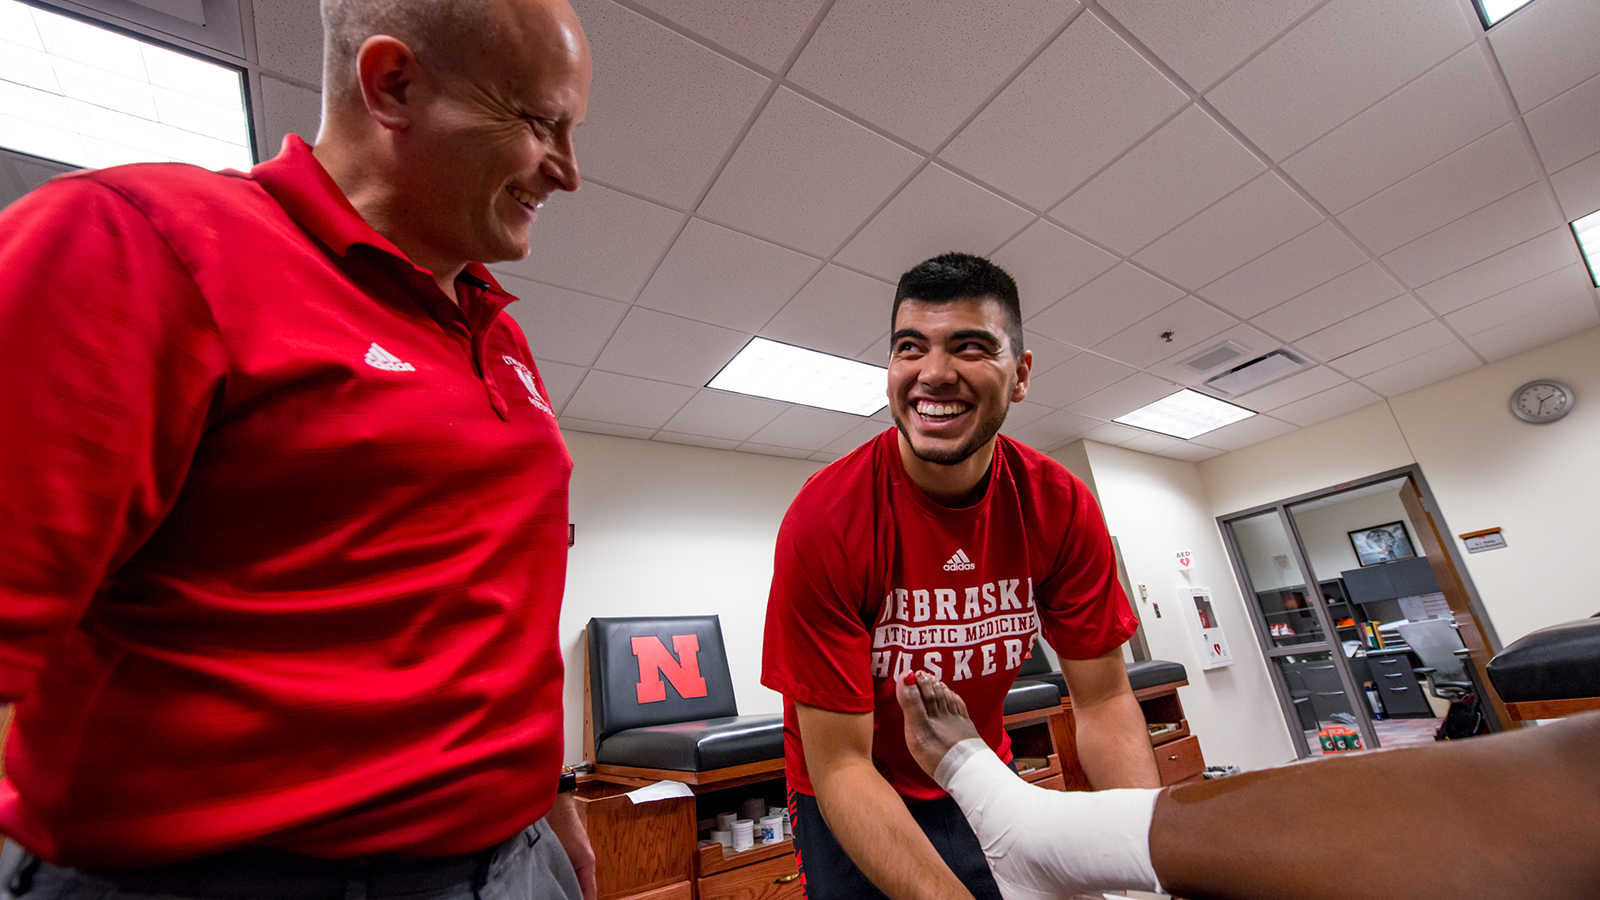 Dario receives feedback from his instructor in the Husker athletic training room.